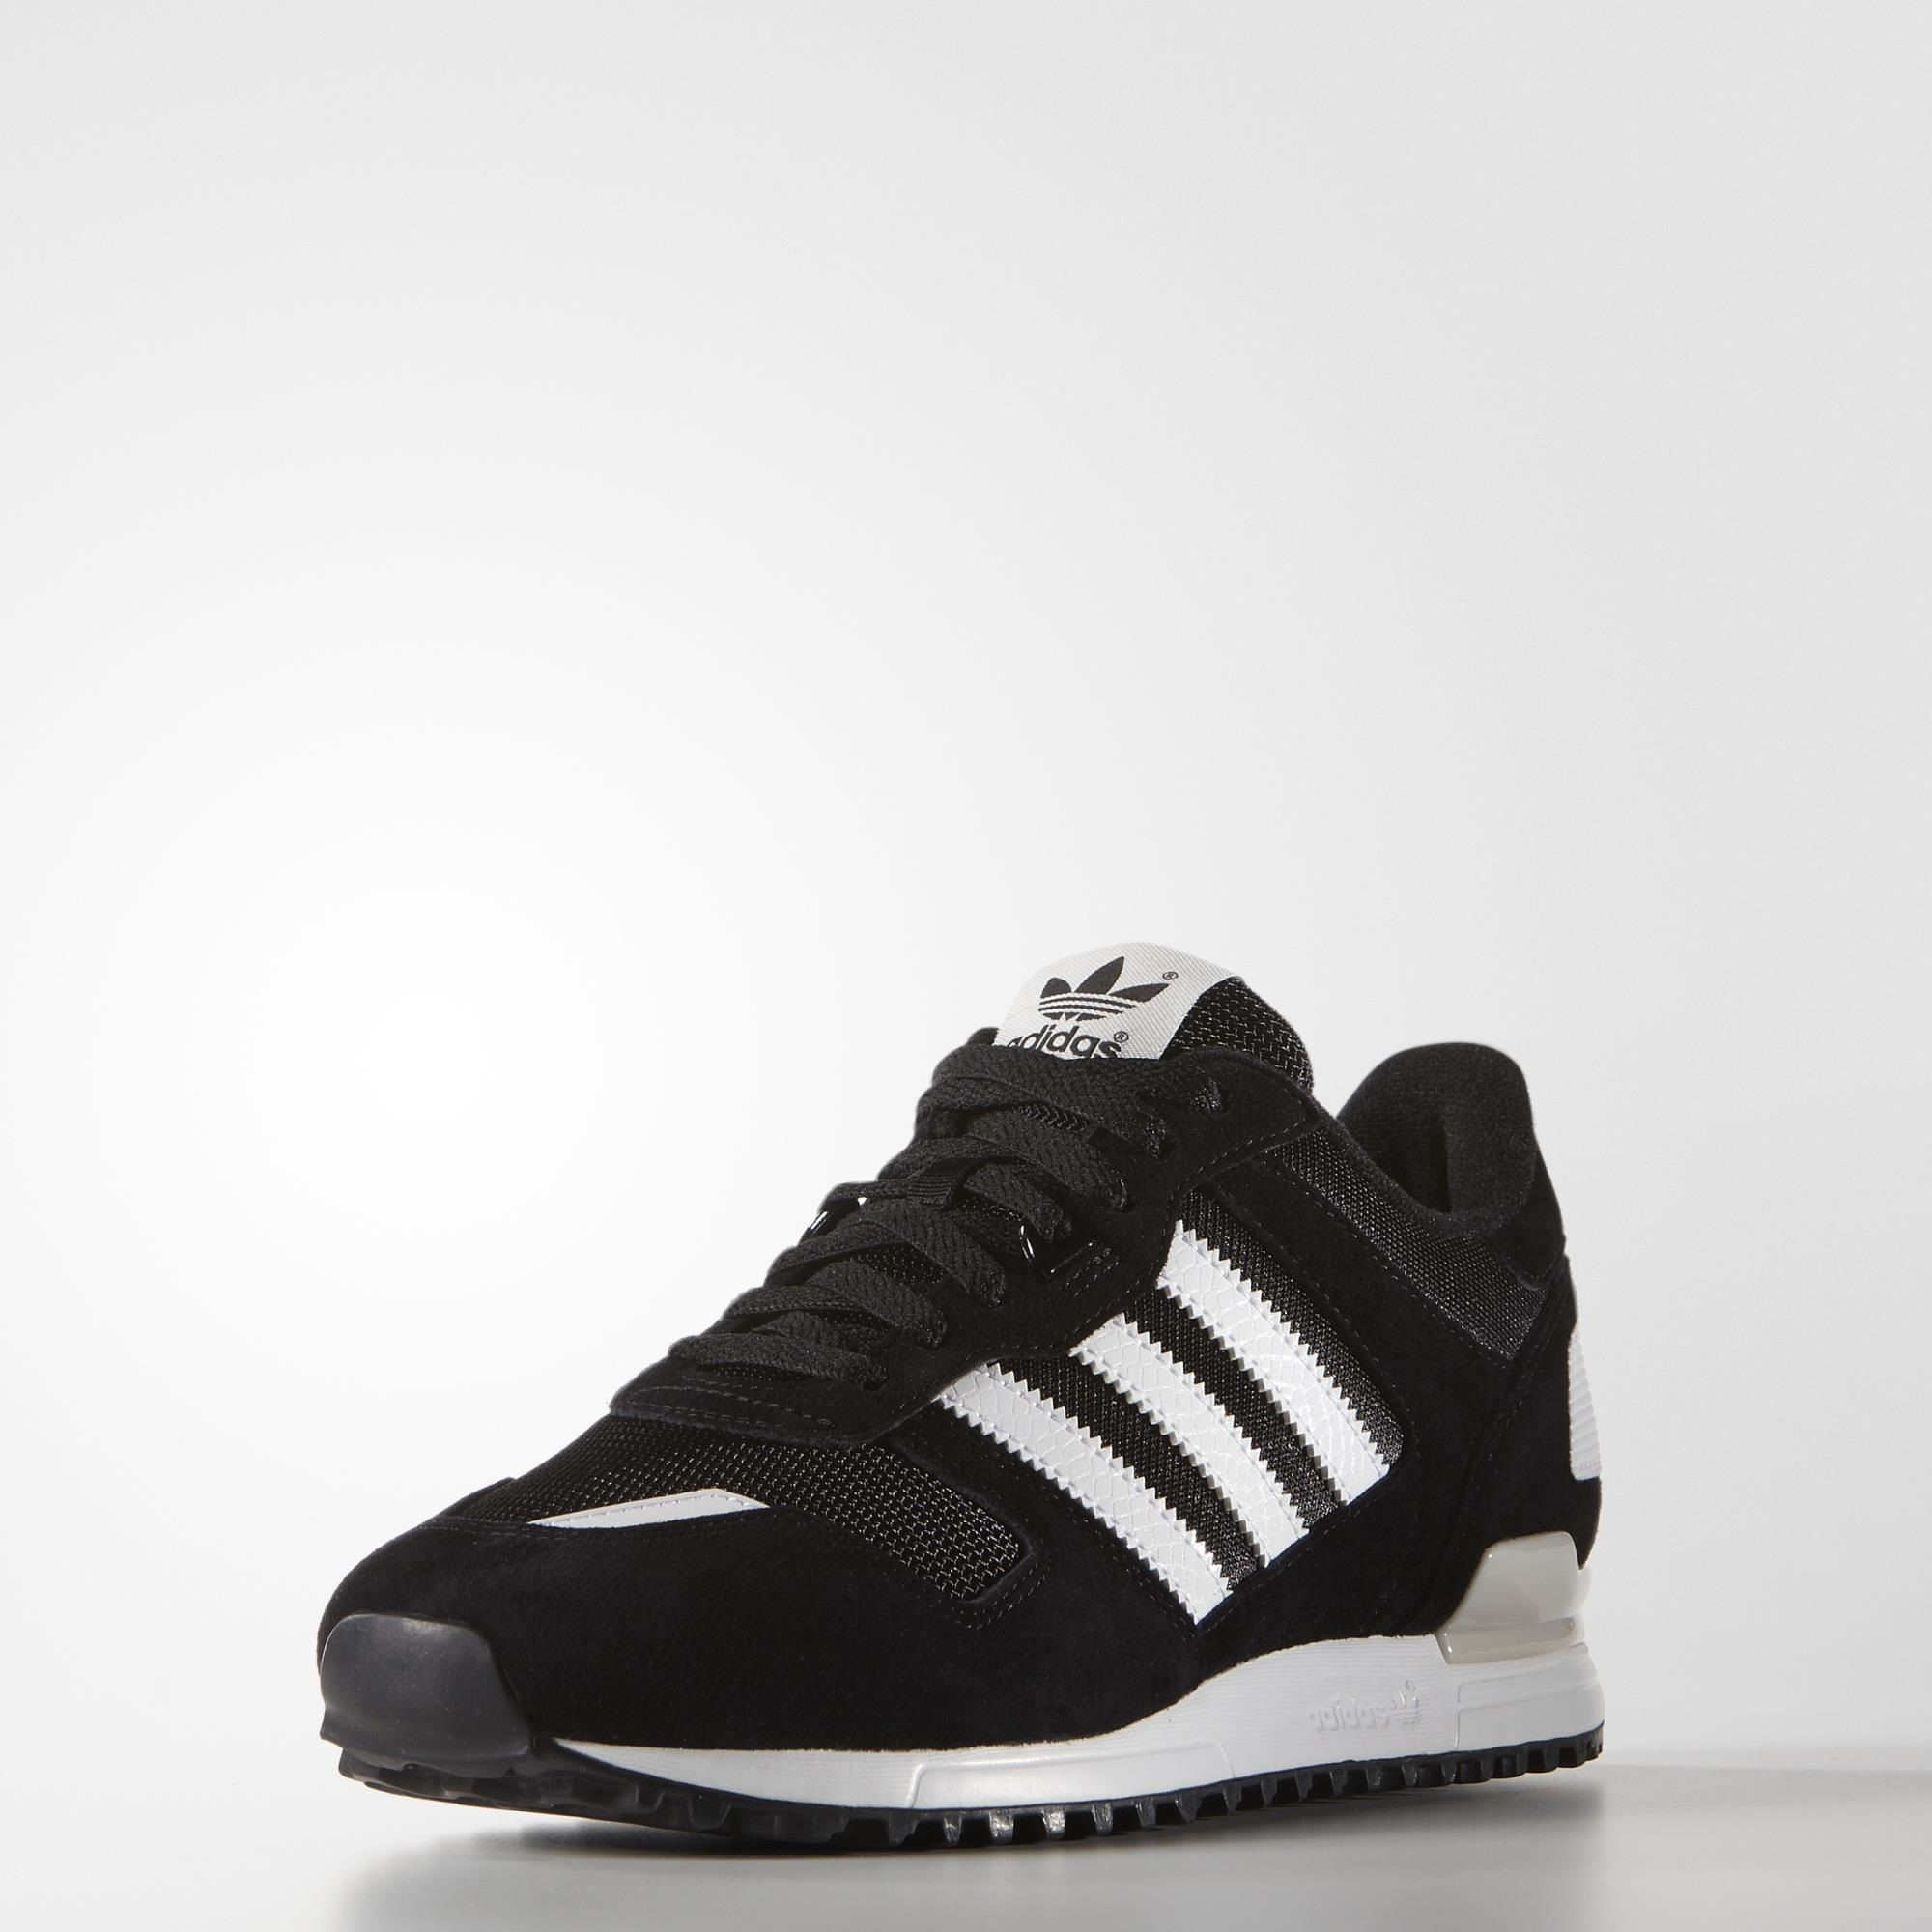 adidas zx 700 mujer negras